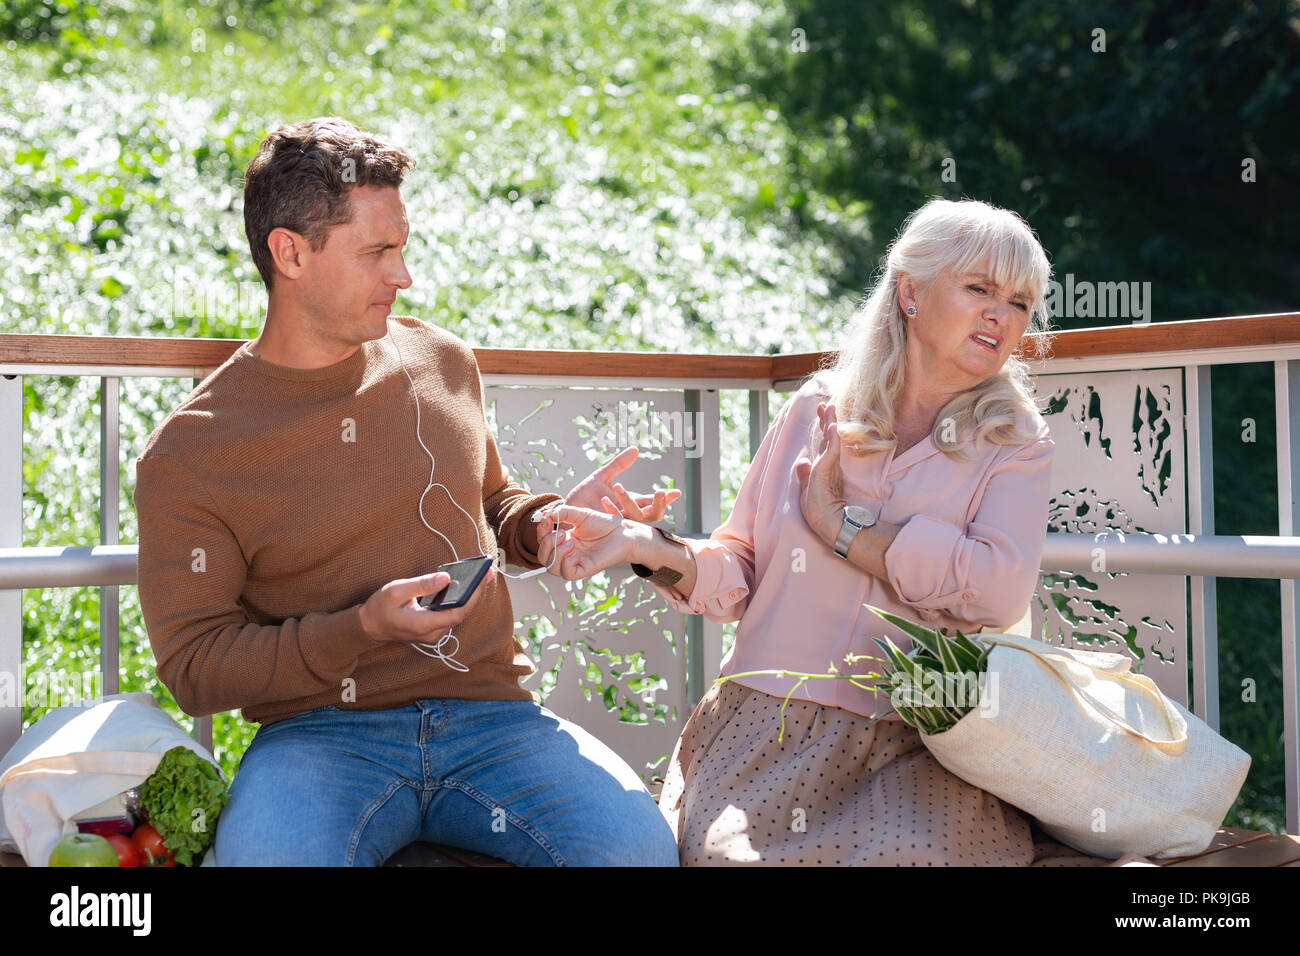 Attentive male person looking at strange woman - Stock Image